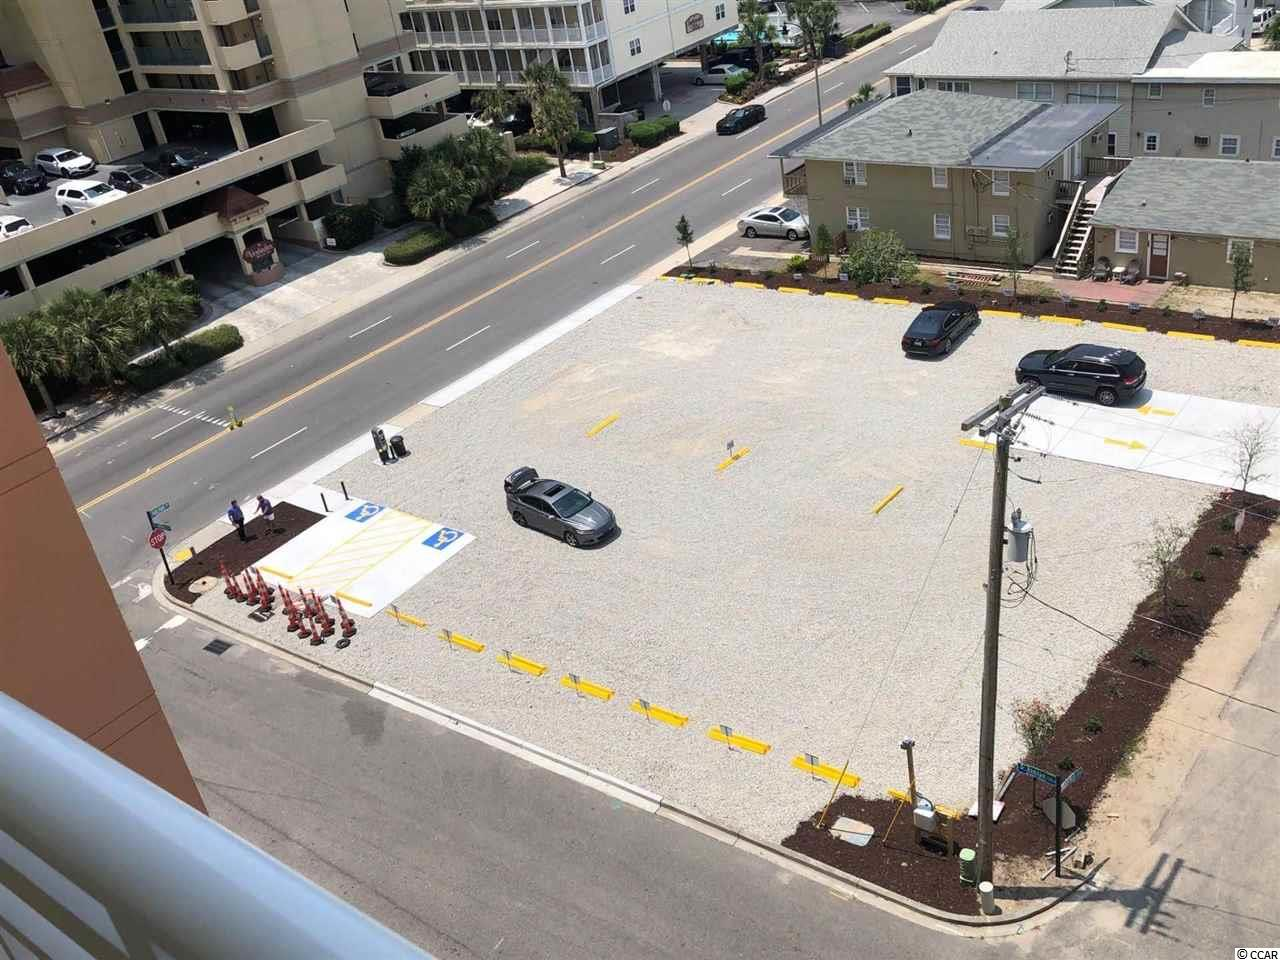 Rare opportunity to purchase a (PAY) Parking Lot  with 30 Parking spots in North Myrtle Beach across from the Wyndham. If you are looking for land to build  You can build  multi-family or single family. this lot is large enough you can divide it in to two lots.